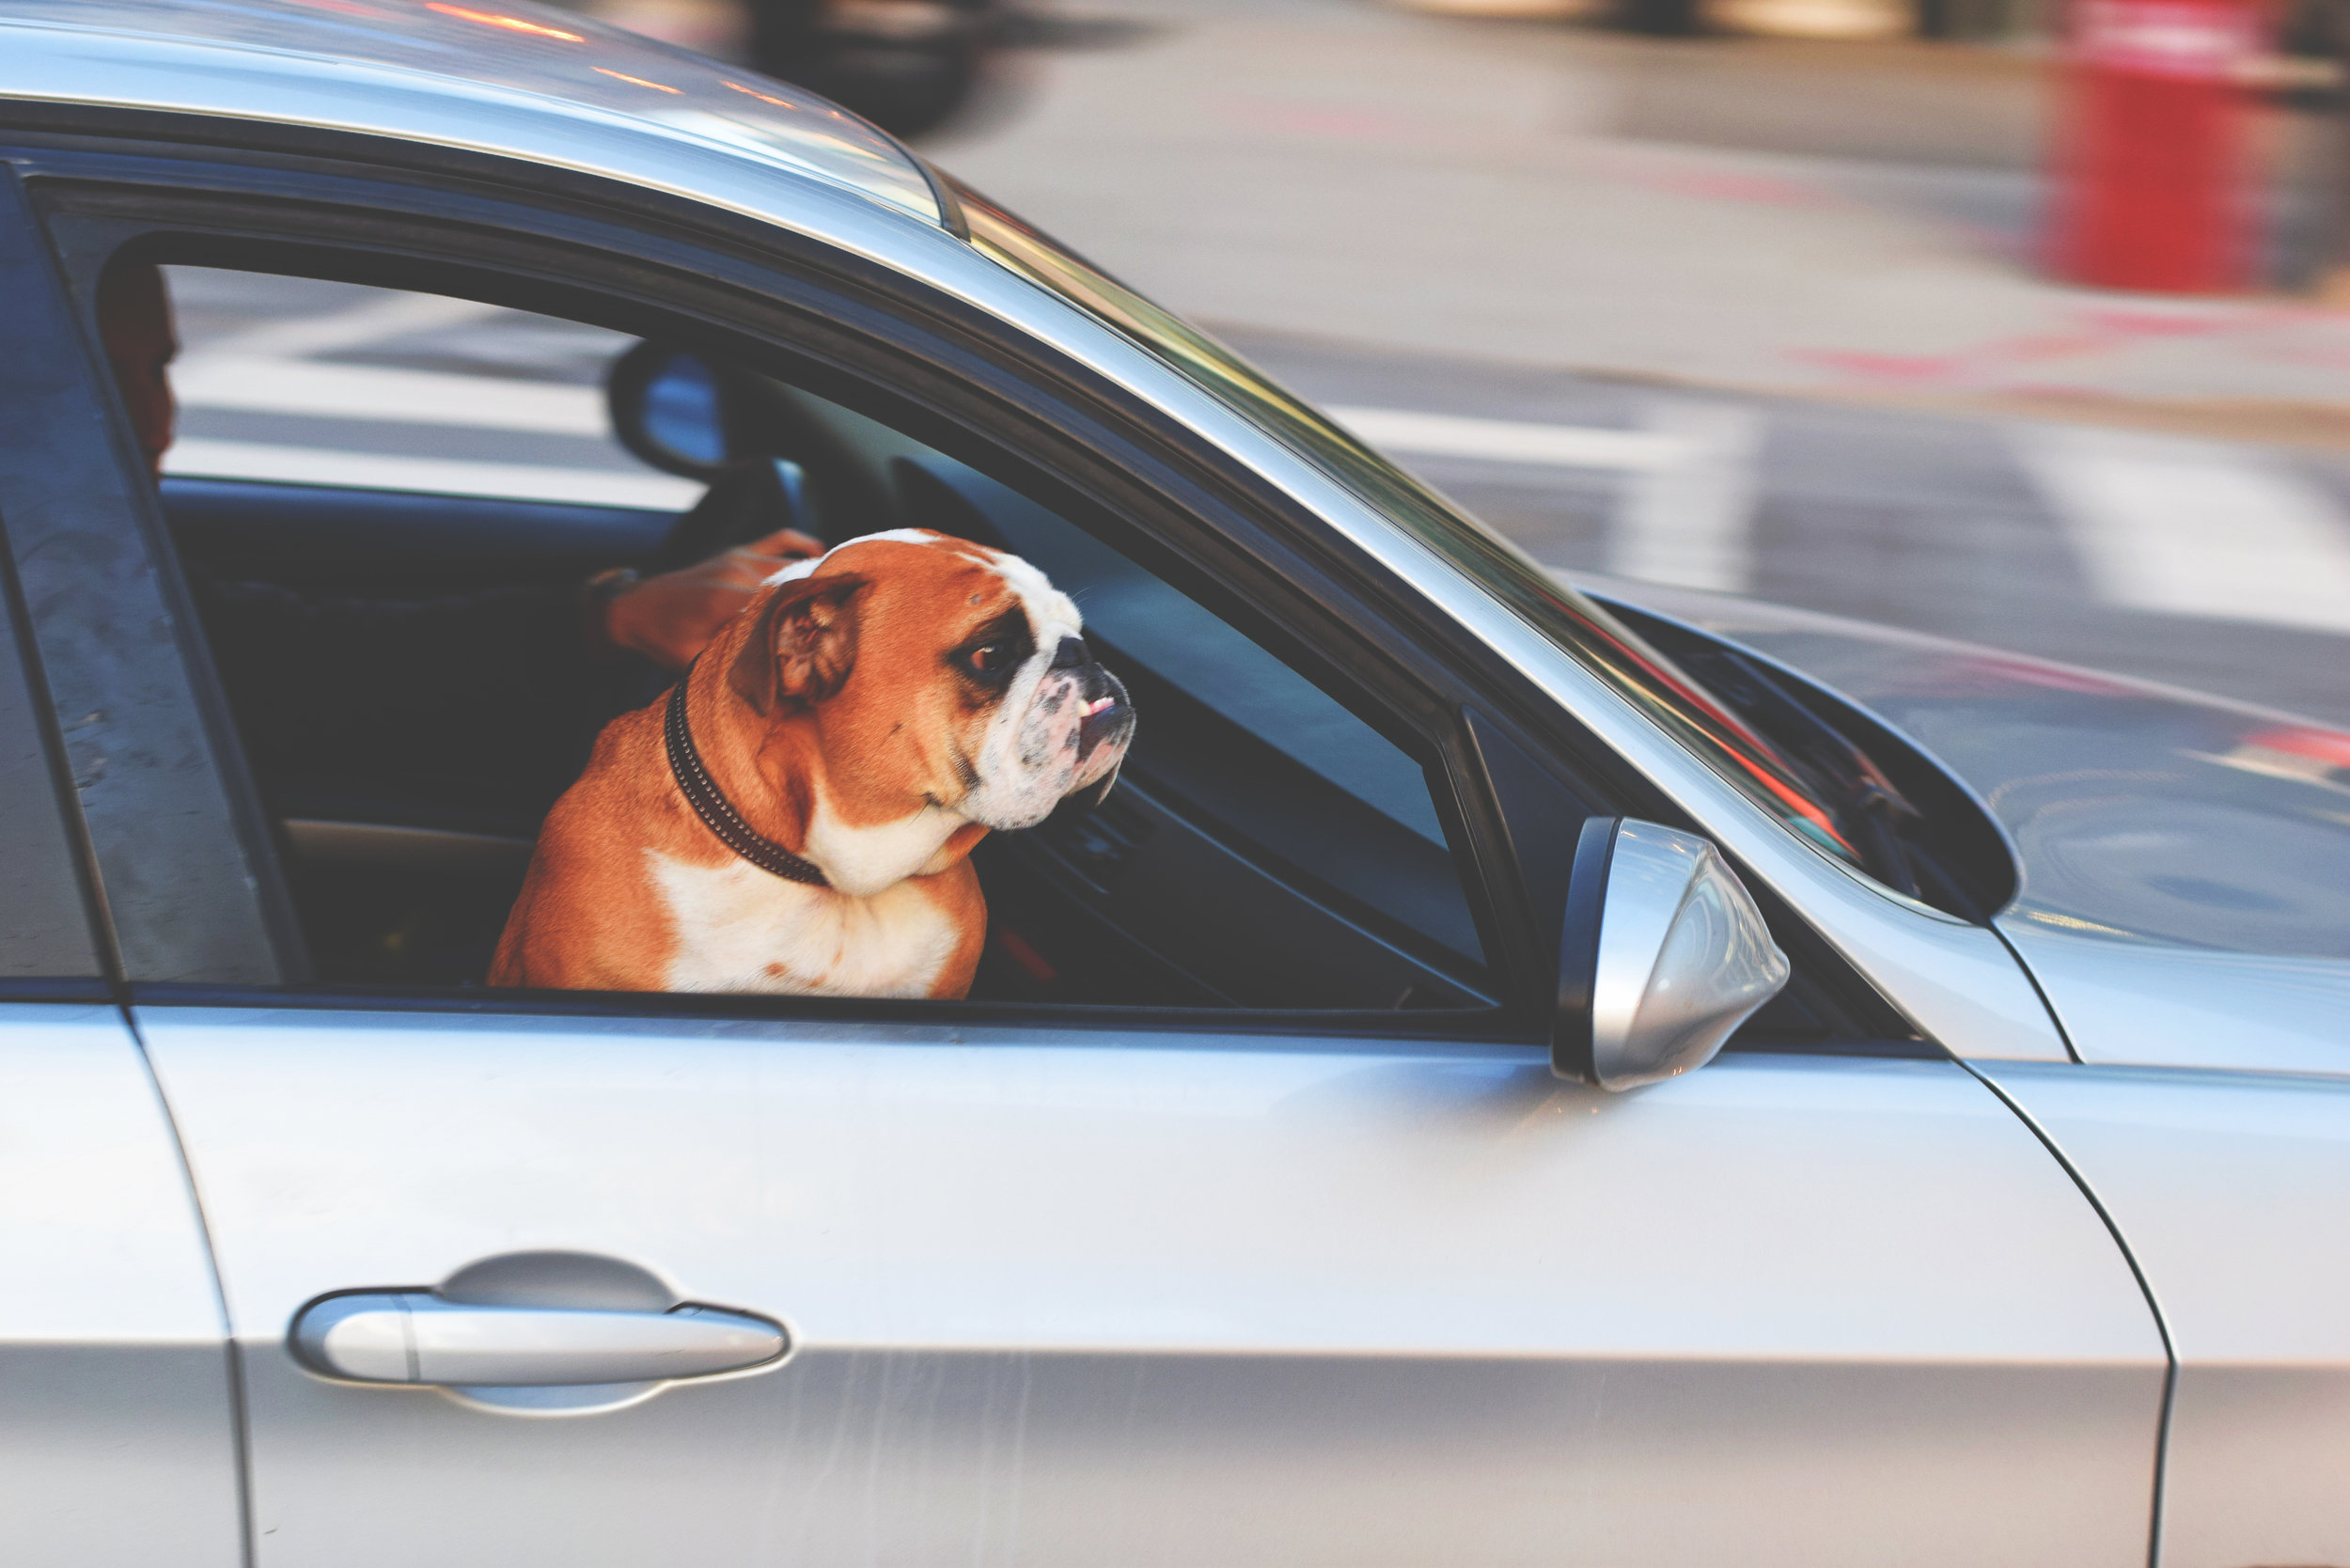 Traveling with Pets - 56% of American travelers are more likely to travel with their pets according to the 2017 Trip Advisor Annual Traveling with Pets survey.